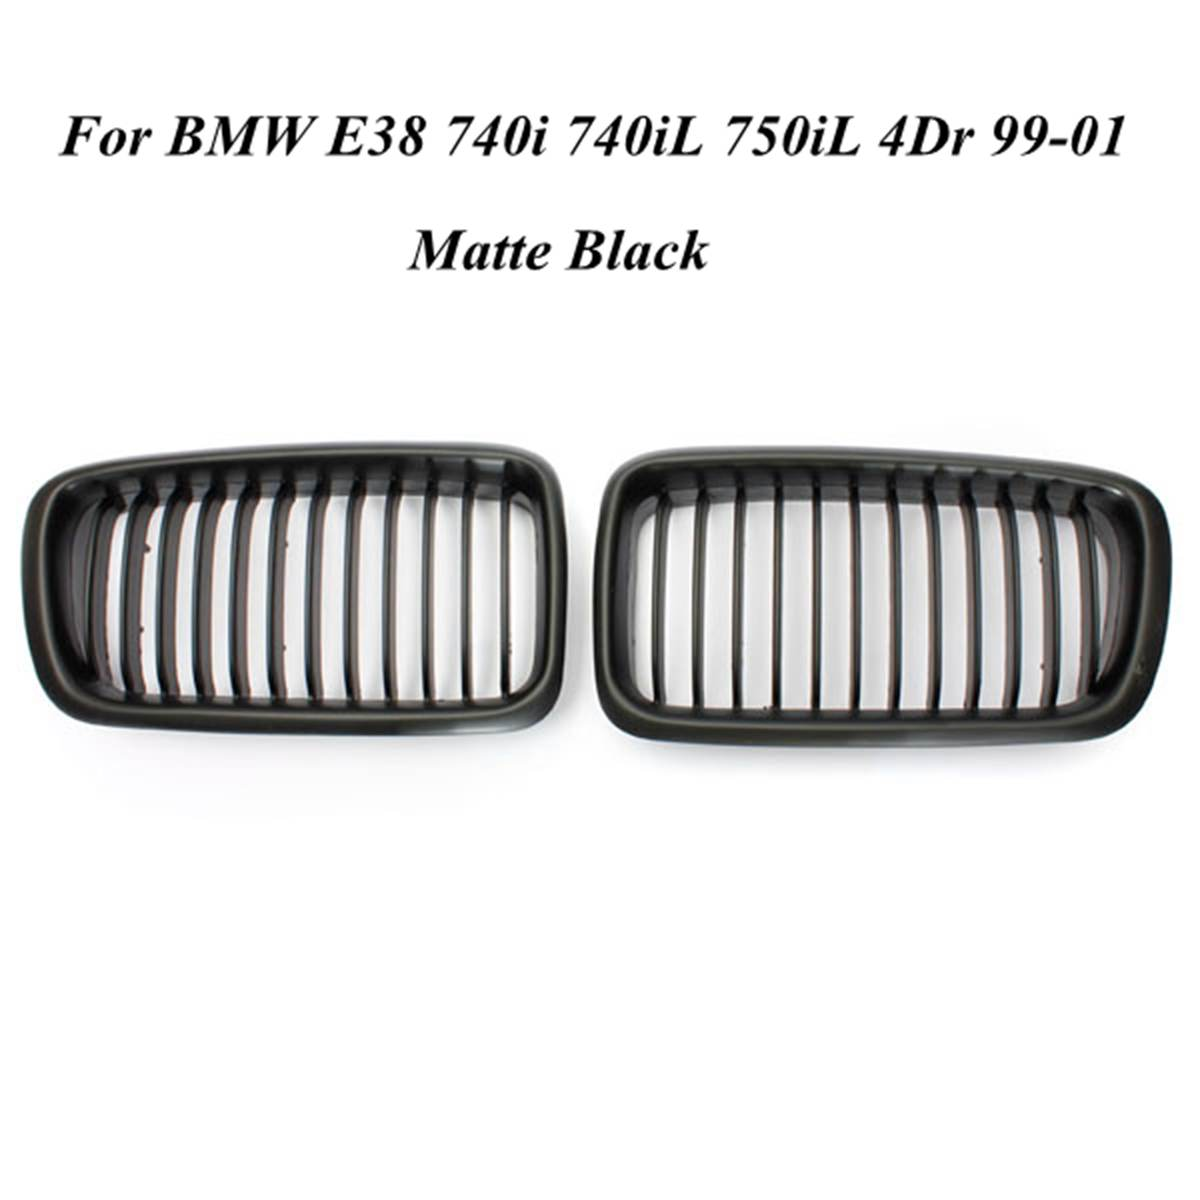 Matte Black Kidney Hood Grille Grill For Bmw E38 740i